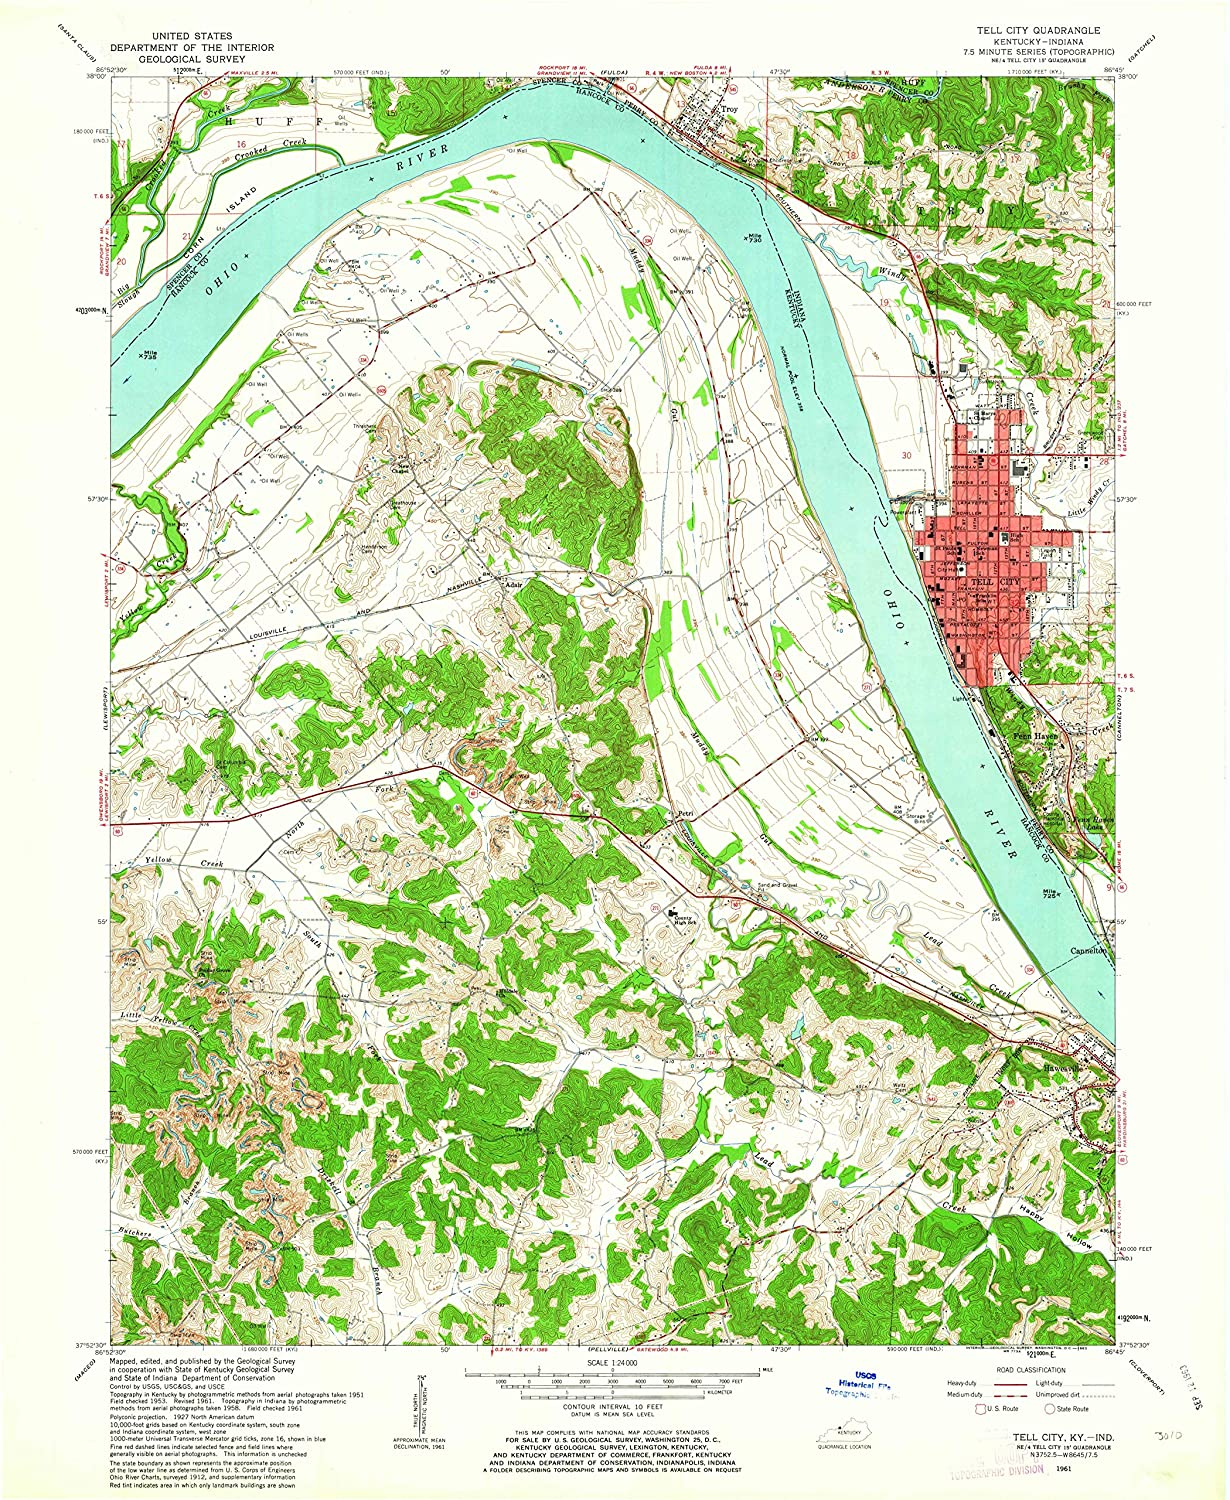 Map Print - Tell City, Indiana (1961), 1:24000 Scale - 24